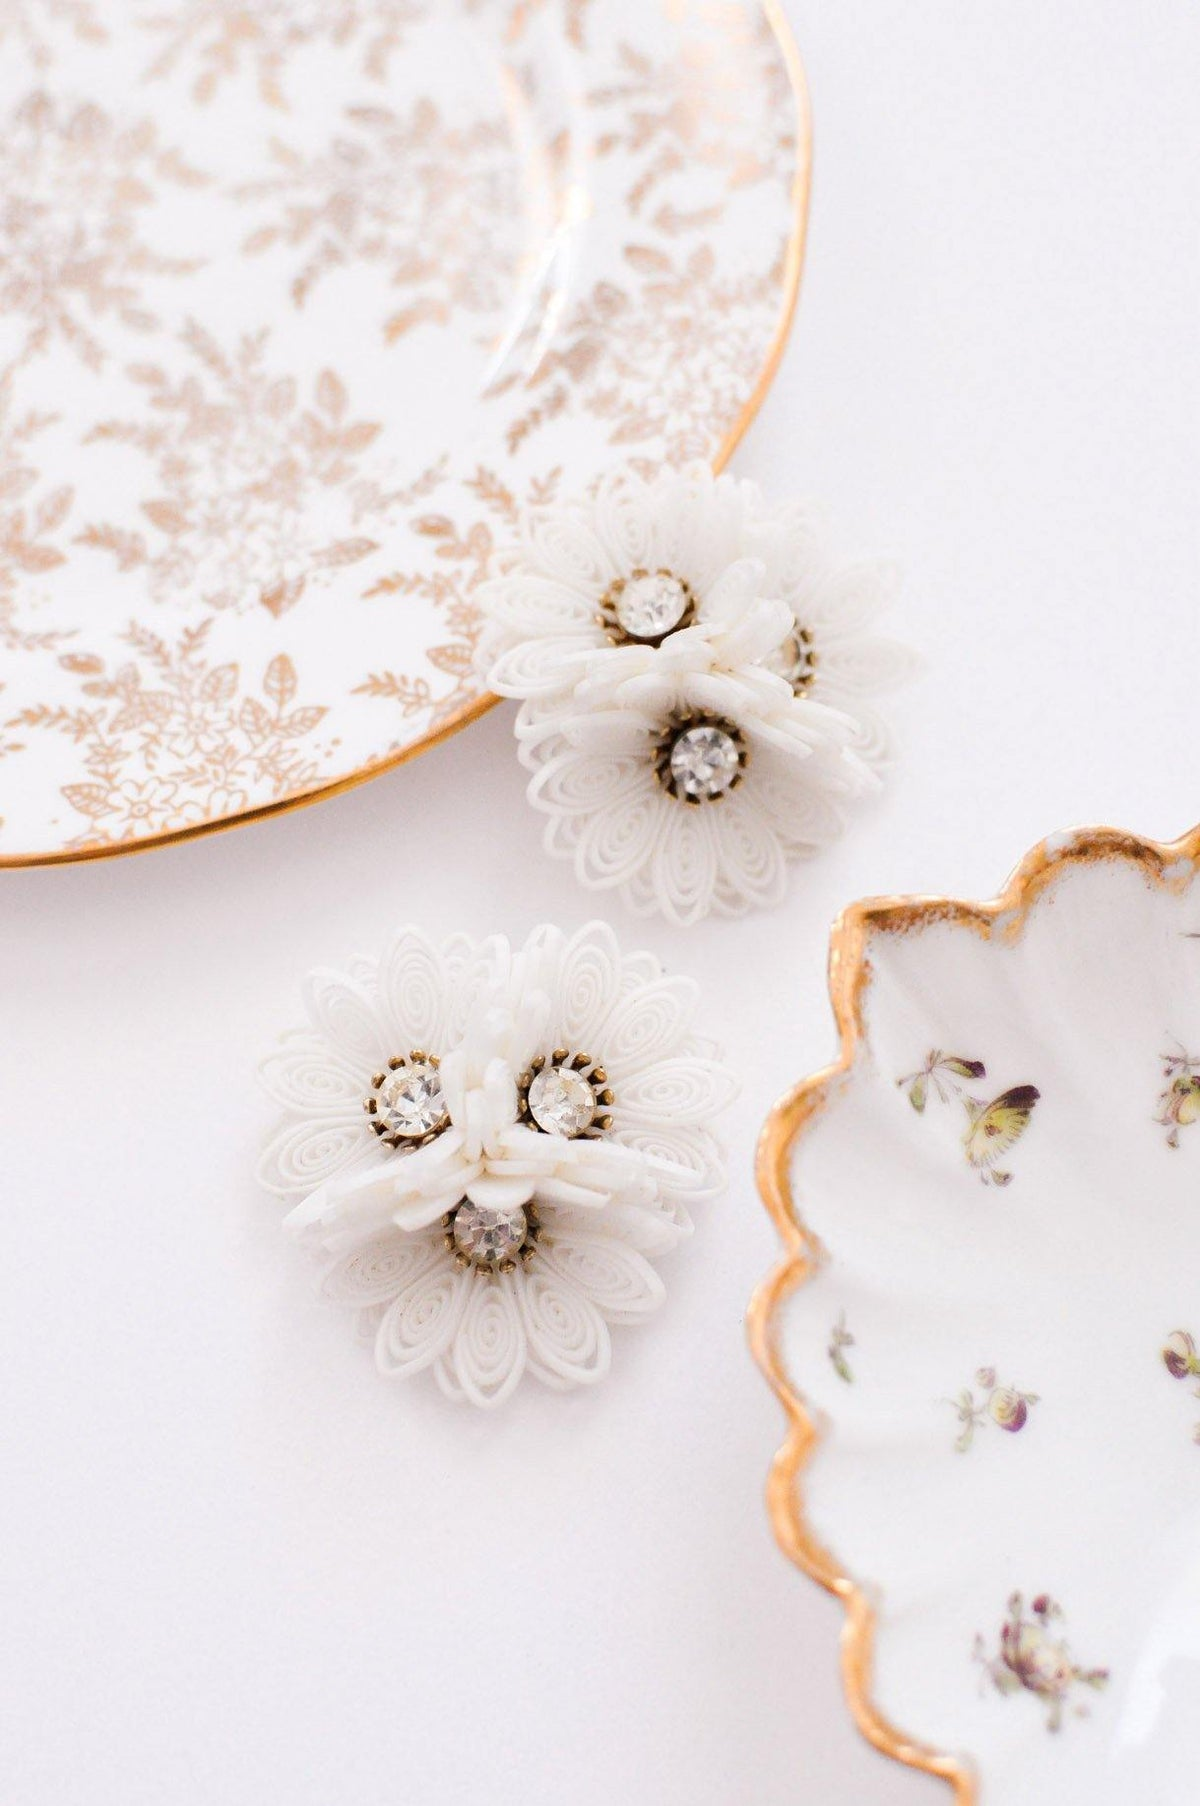 3D Floral Clip-on Earrings - Sweet & Spark